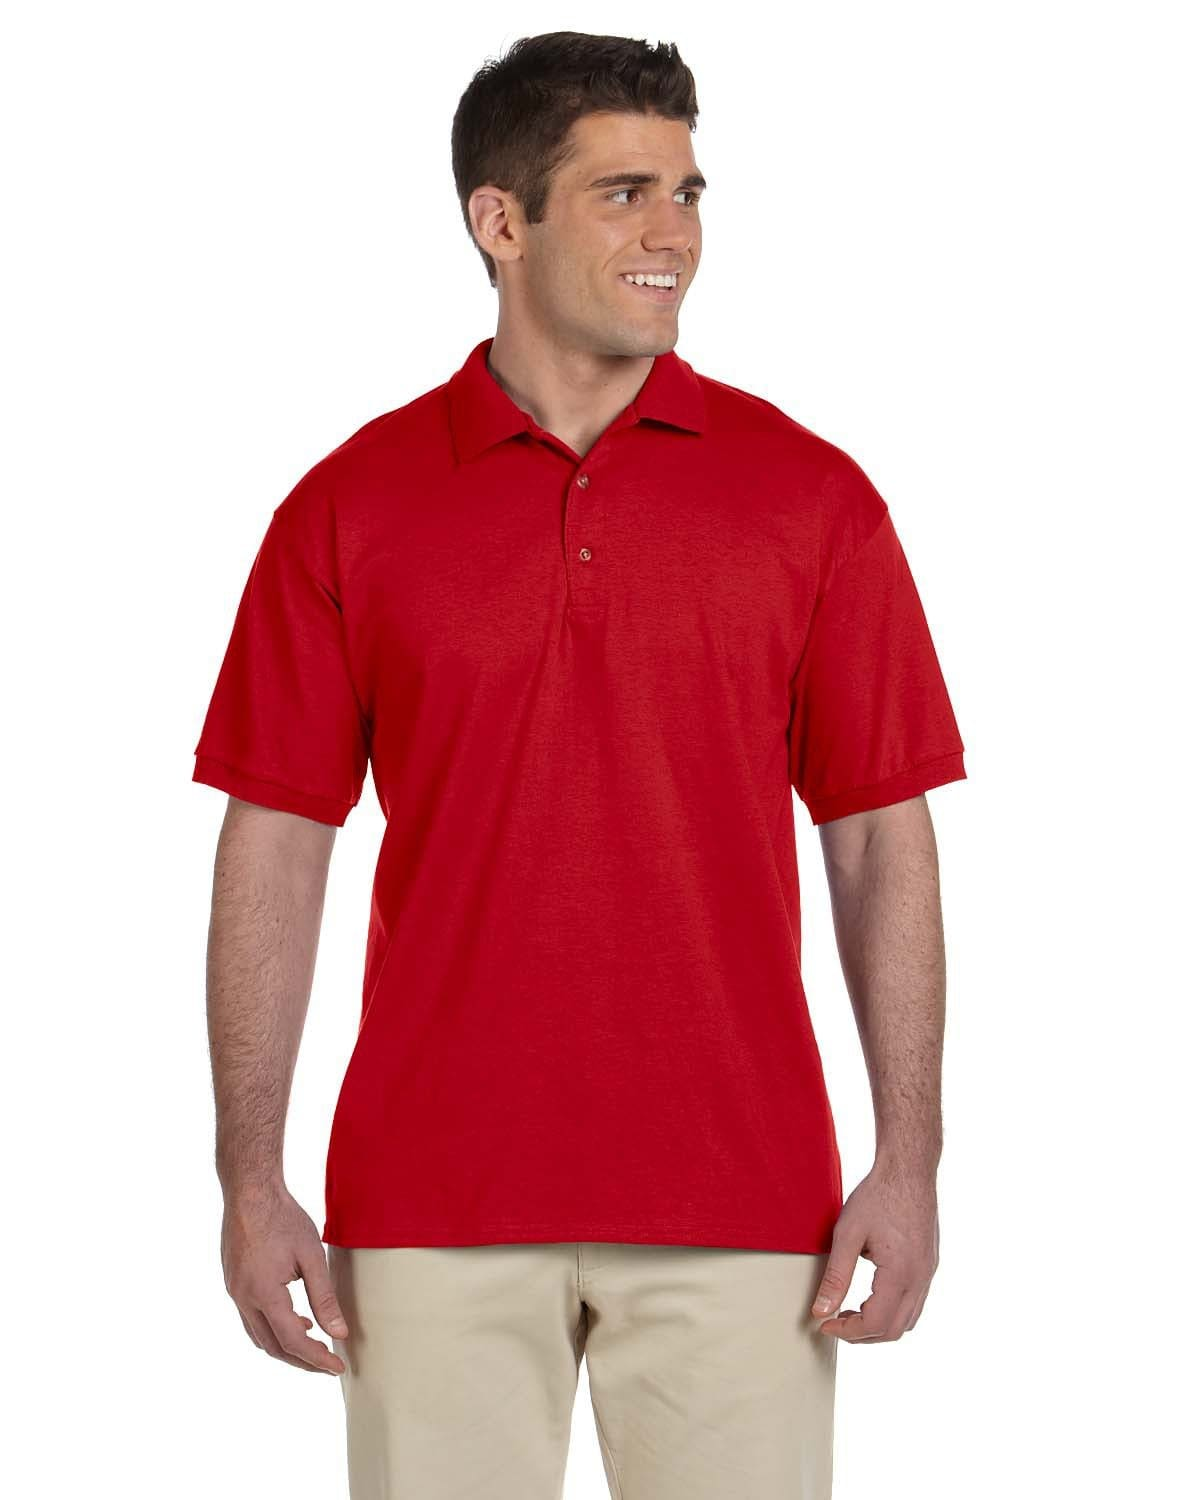 g280-adult-ultra-cotton-adult-6-oz-jersey-polo-Small-BLACK-Oasispromos